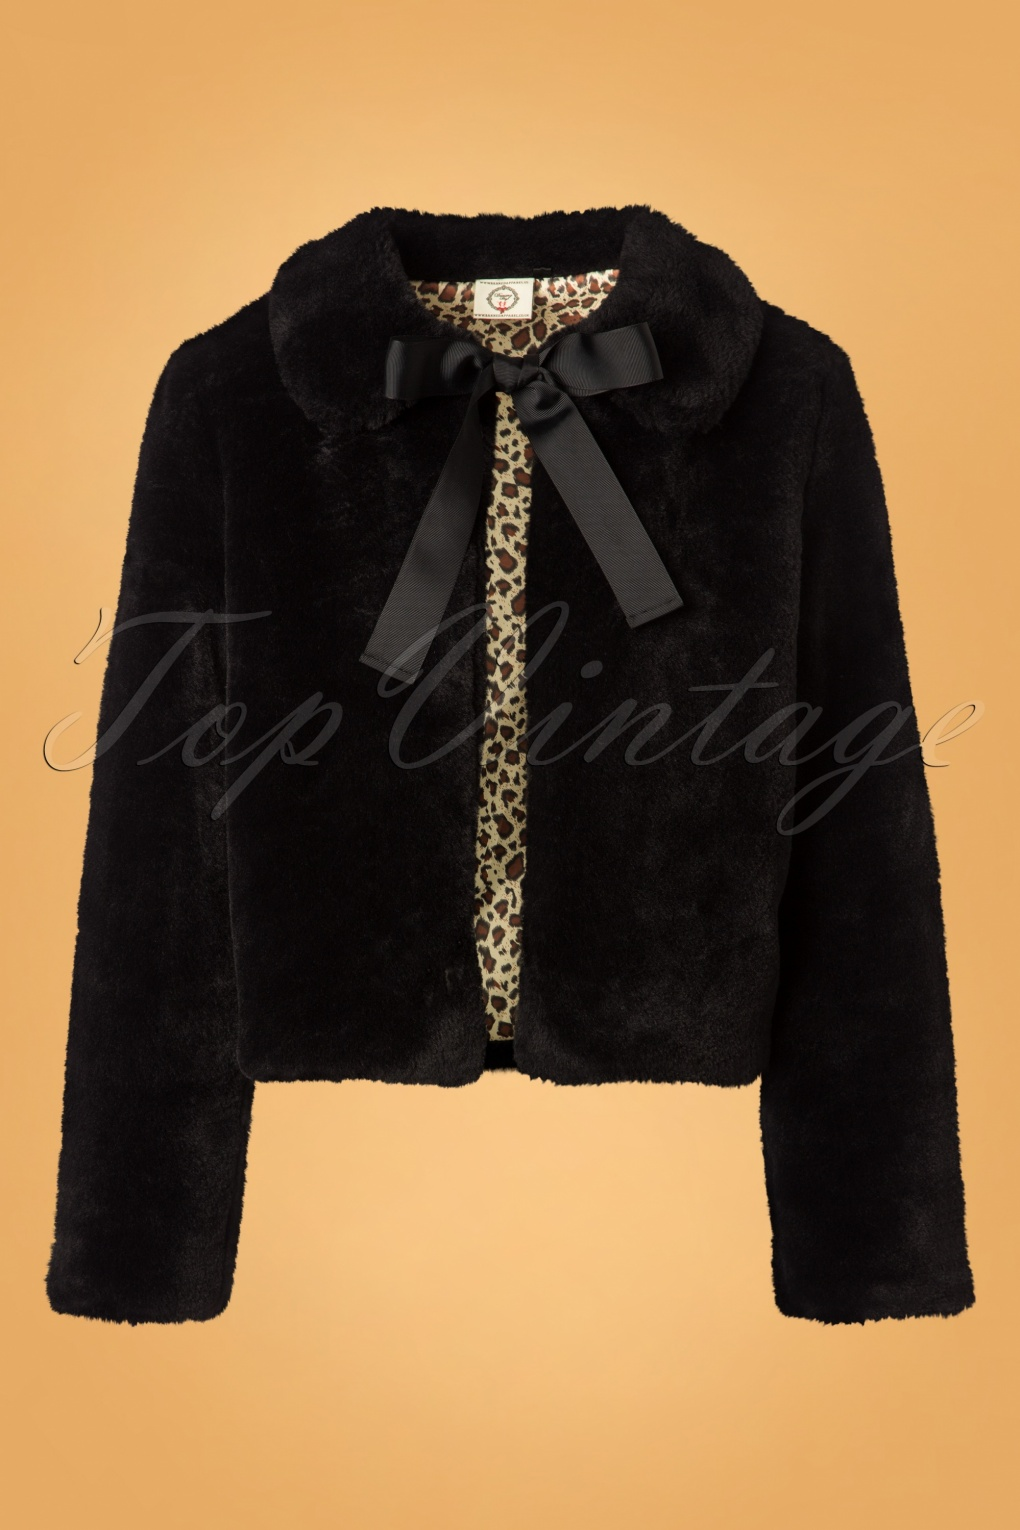 1950s Jackets, Coats, Bolero | Swing, Pin Up, Rockabilly 50s Rock n Roll Swing Fur Jacket in Black £45.42 AT vintagedancer.com